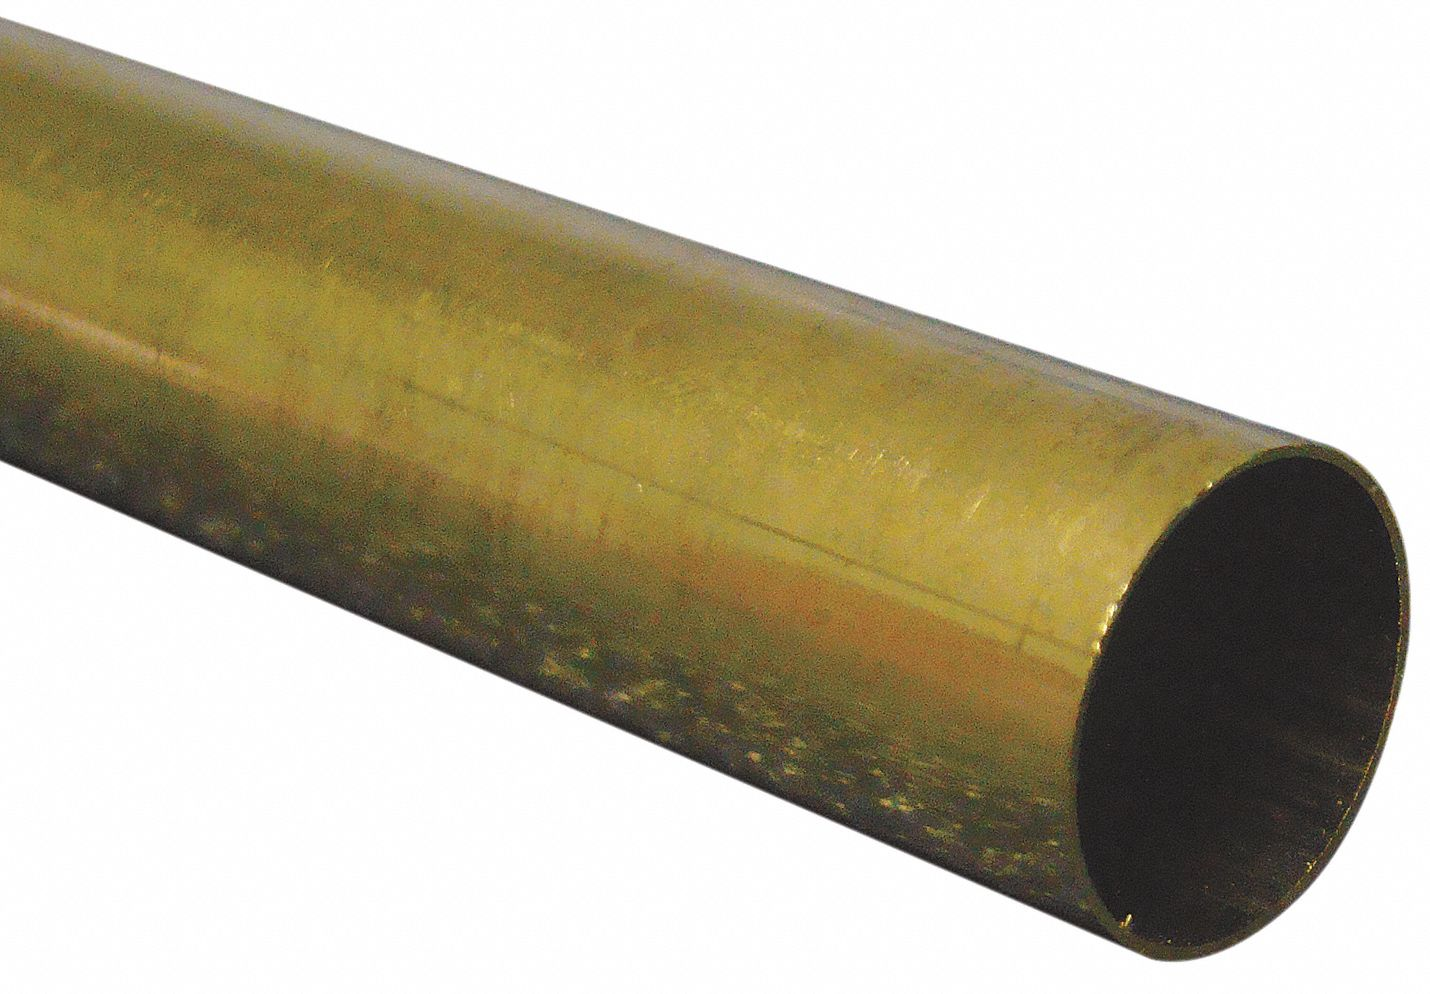 3 ft Brass Tubing, 15/32 in Outside Dia., 0.441 in Inside Dia., General Purpose